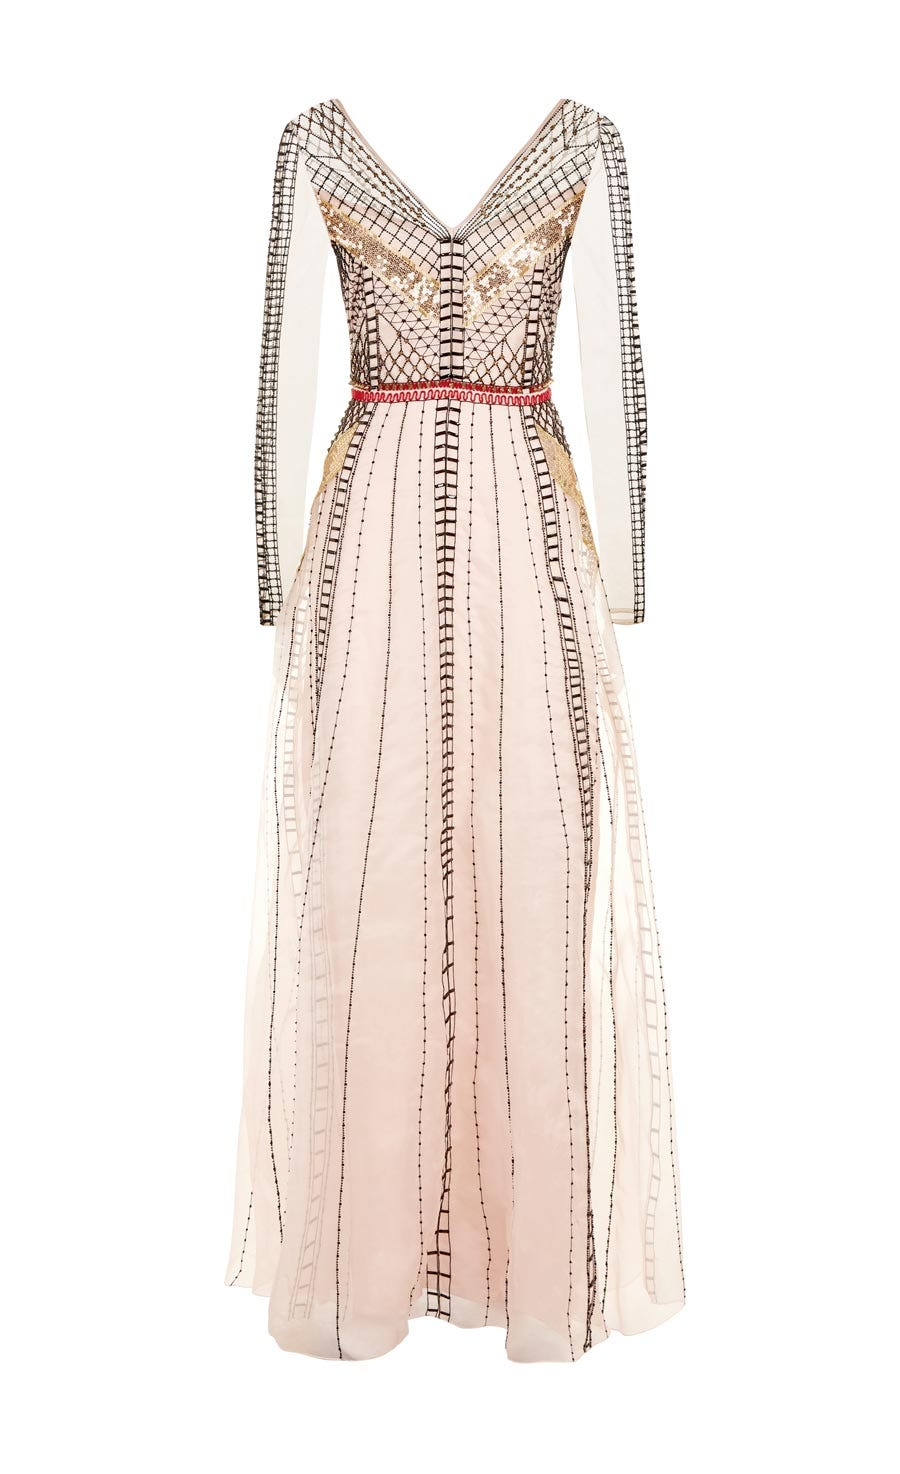 Victoria Long Gown